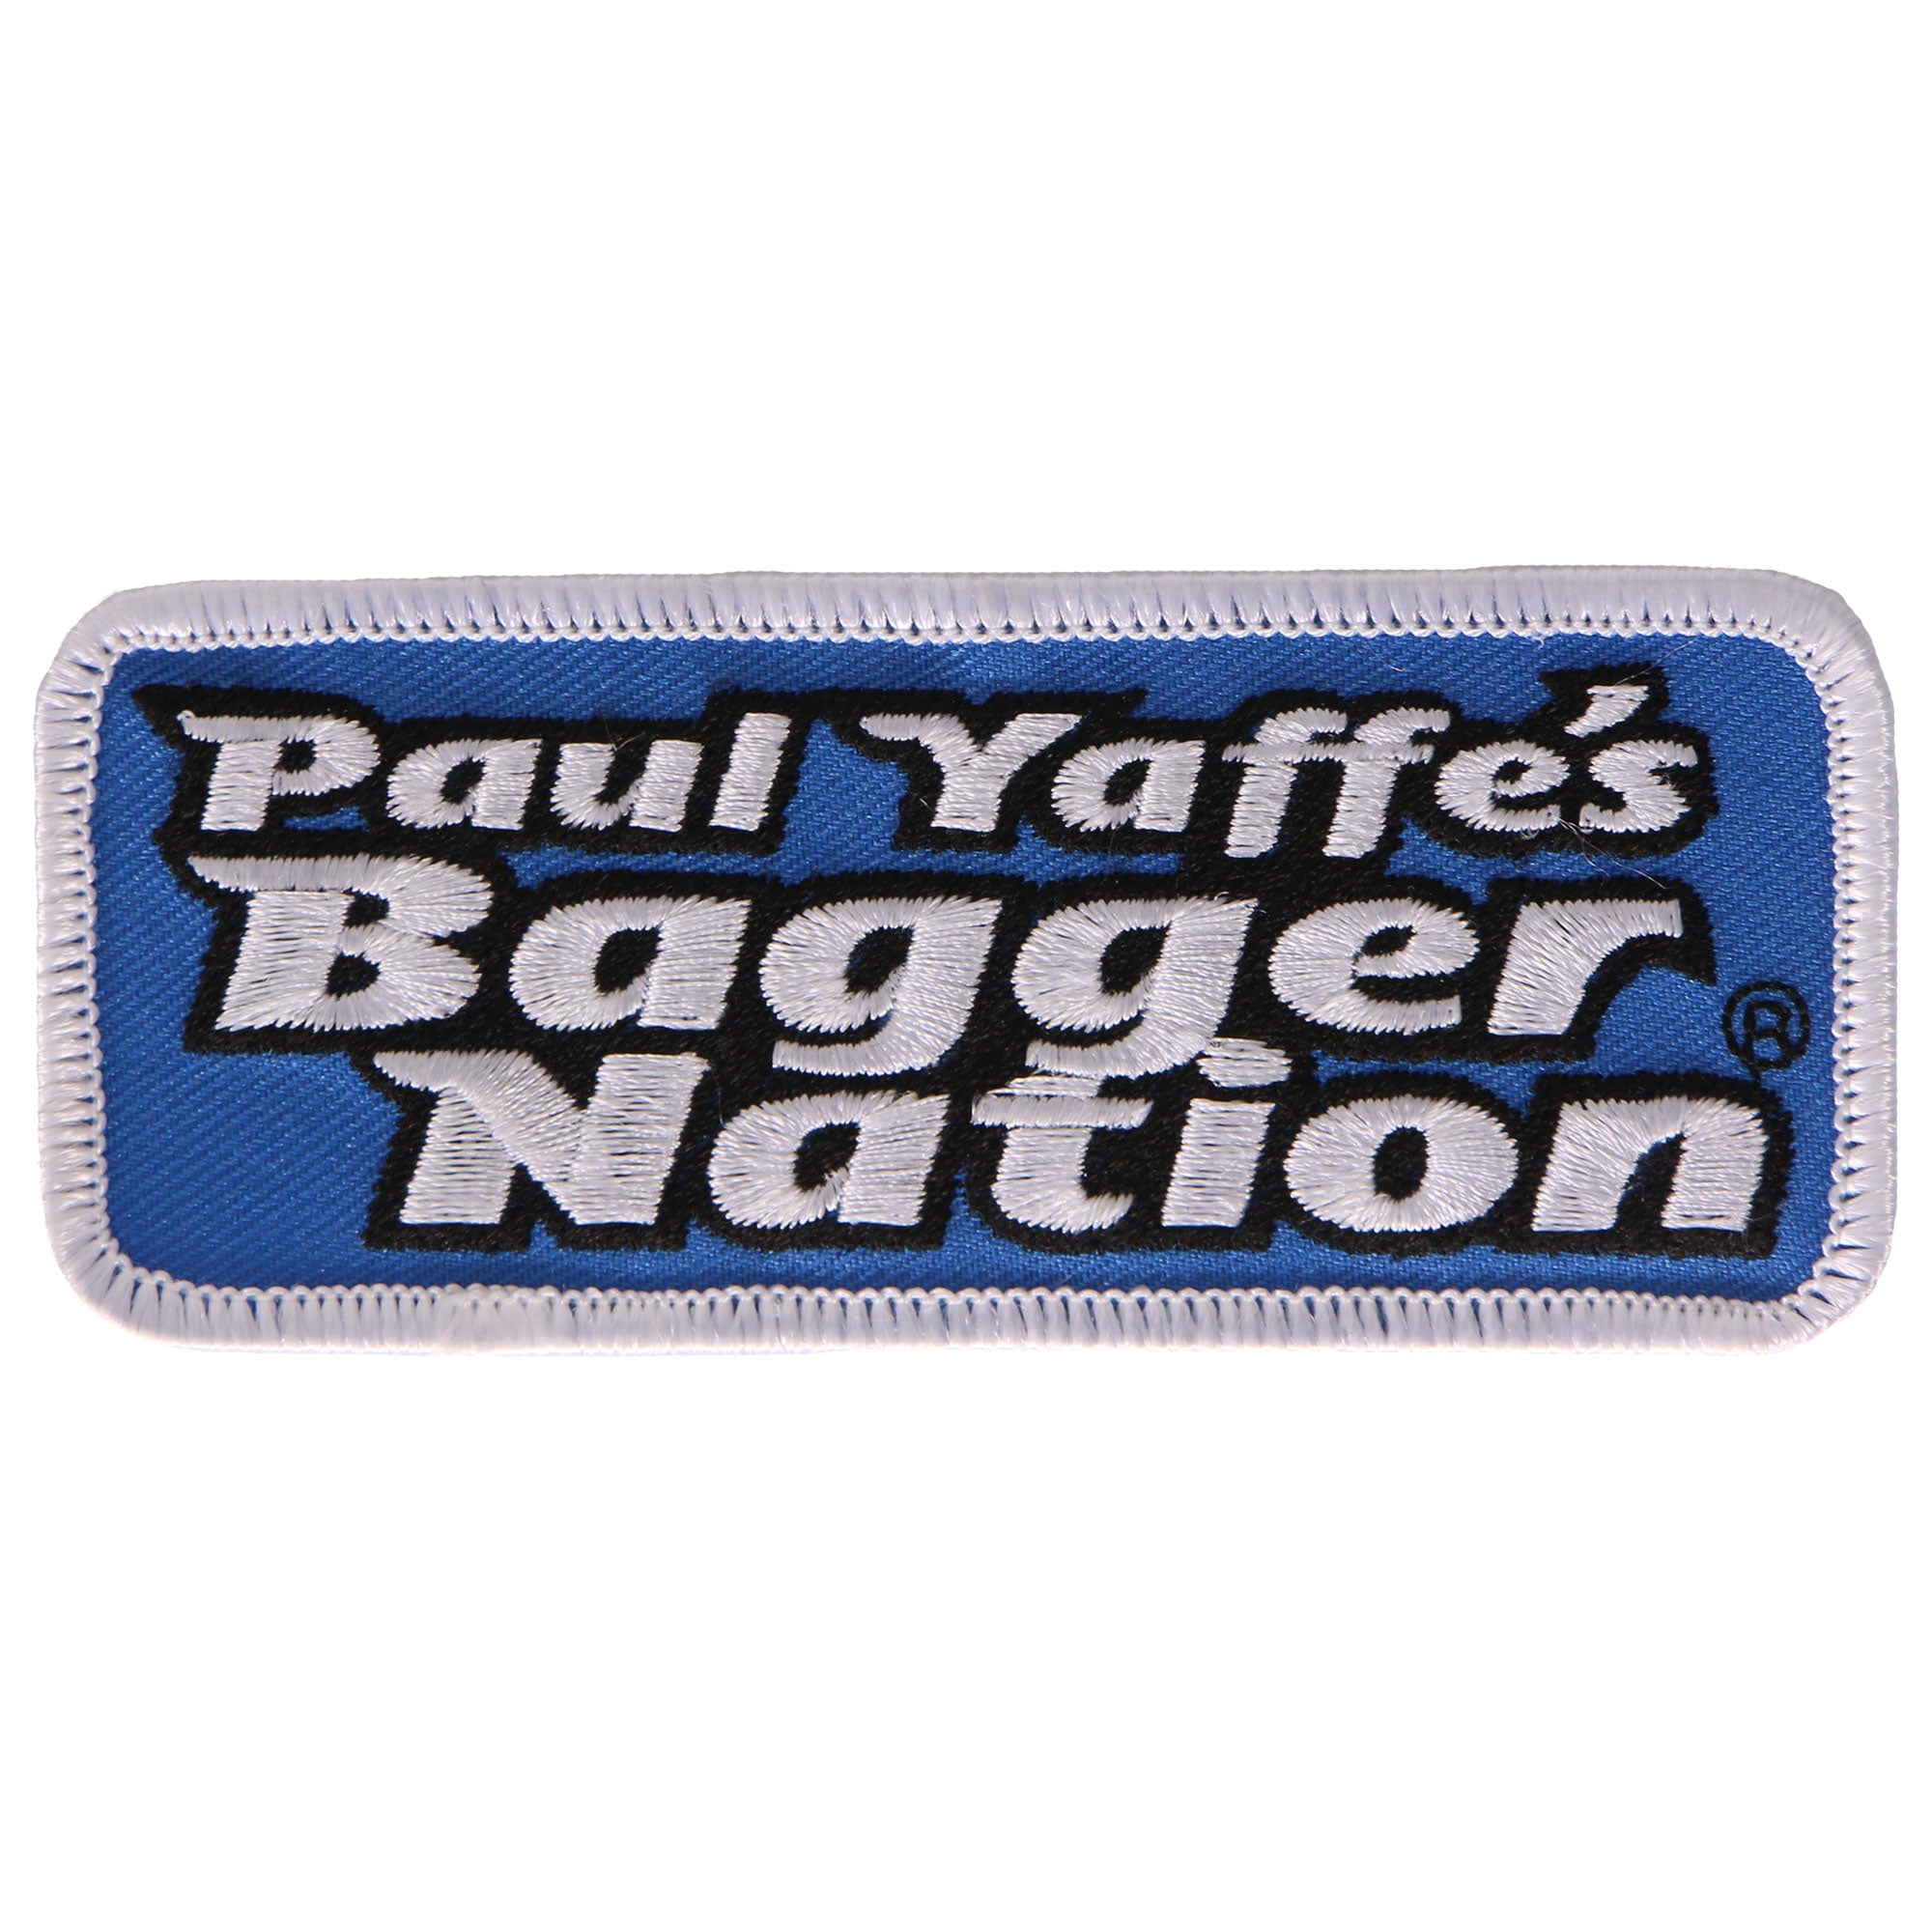 Official Paul Yaffe's Bagger Nation Main Block Patch